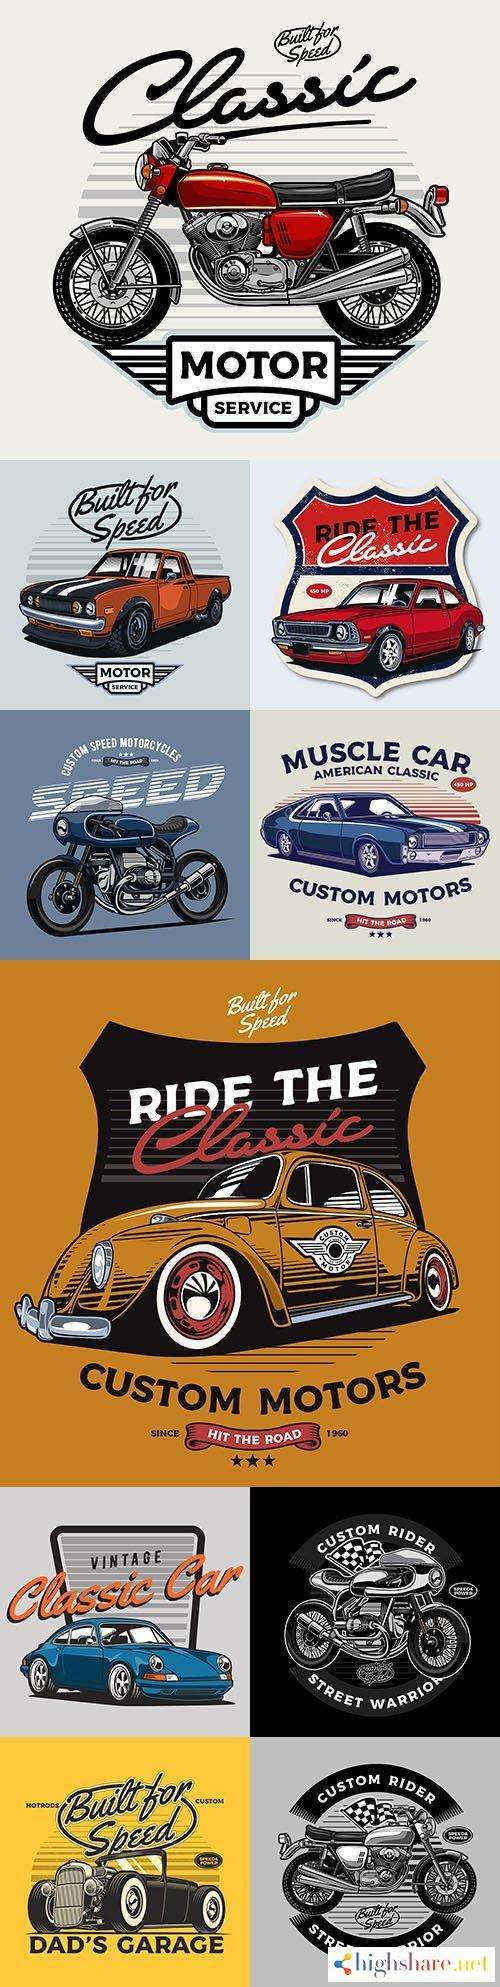 classic car and vintage motorcycle illustrations 5f43c226a3920 - Classic car and vintage motorcycle illustrations